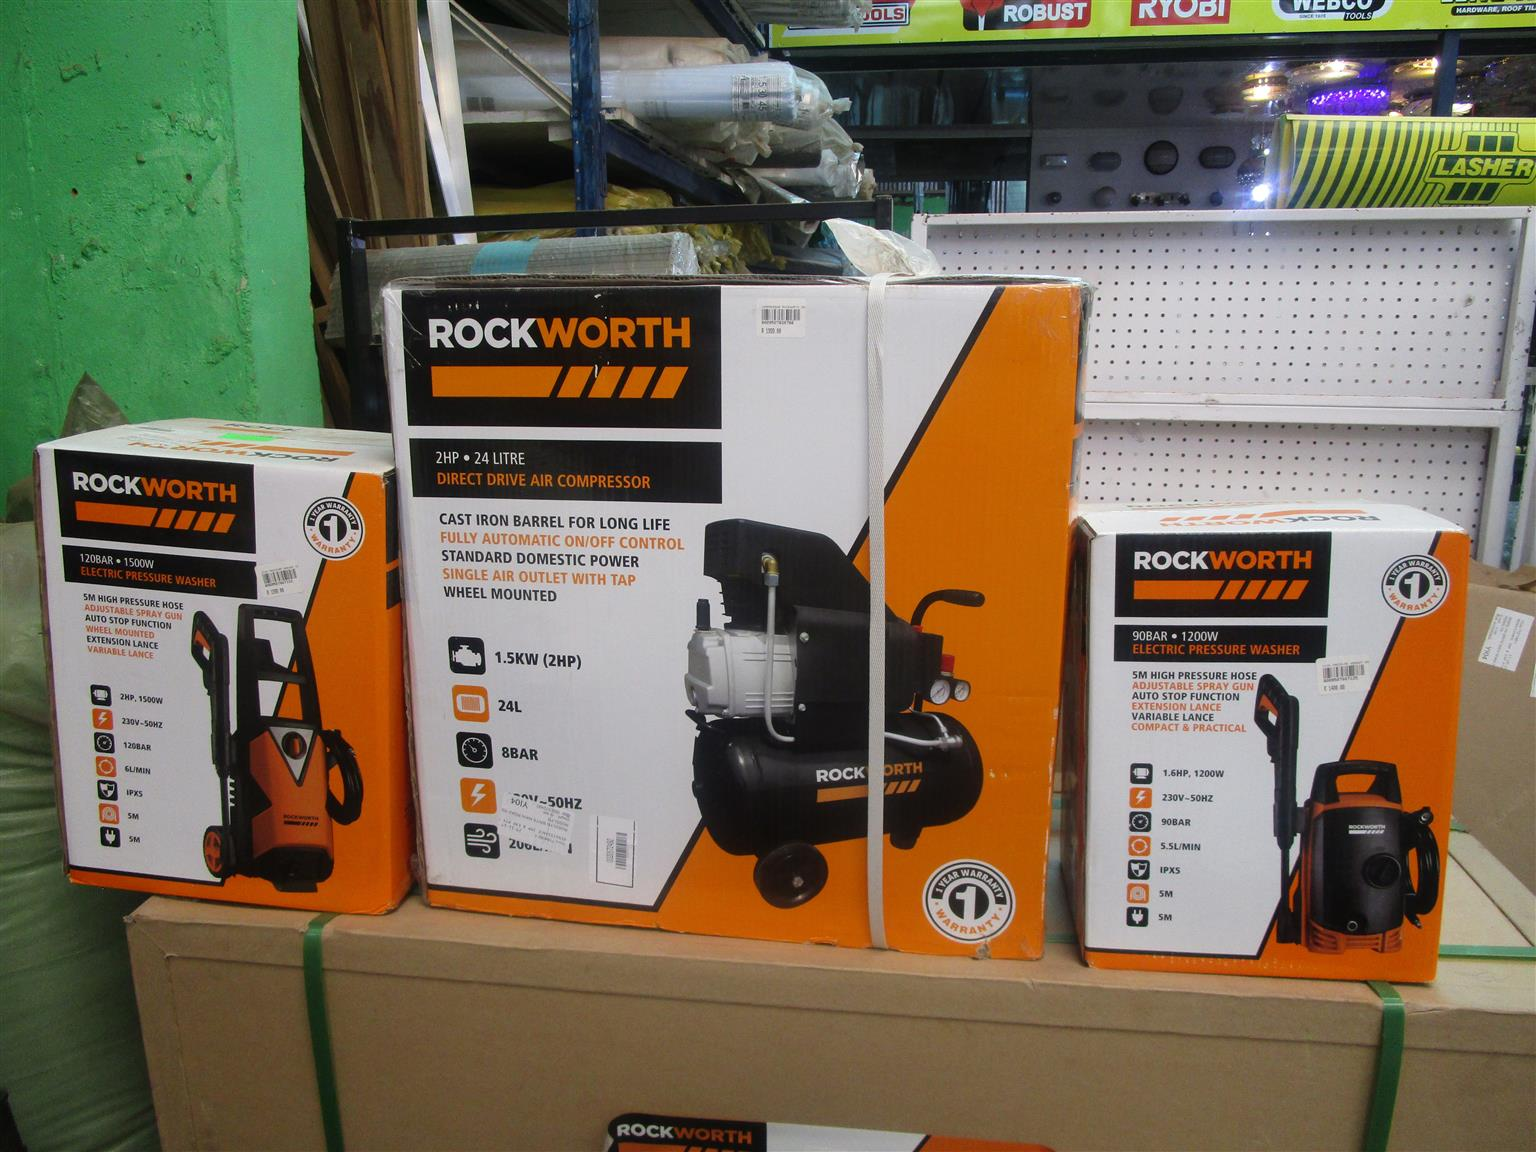 Rock Worth Electric Pressure washer & compressor